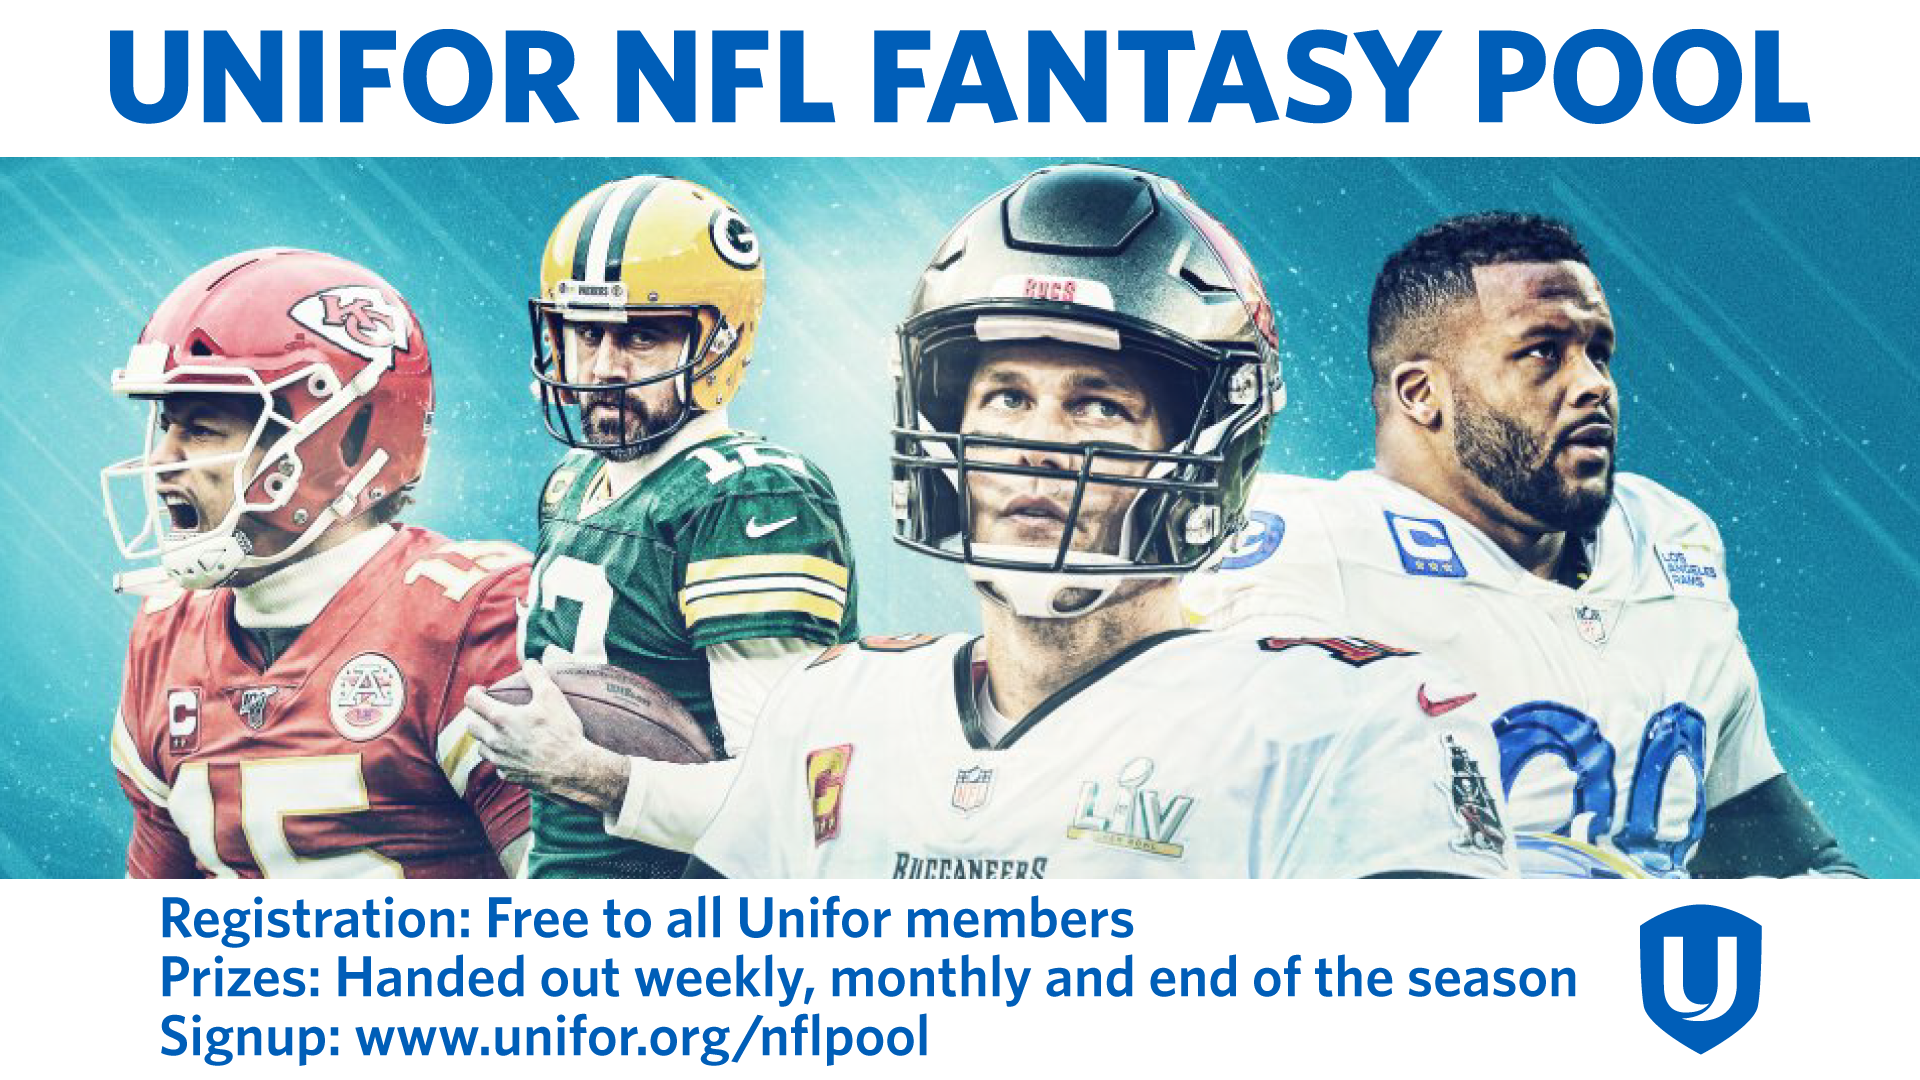 Four Football Players with text that says Unifor NFL Fantasy Pool